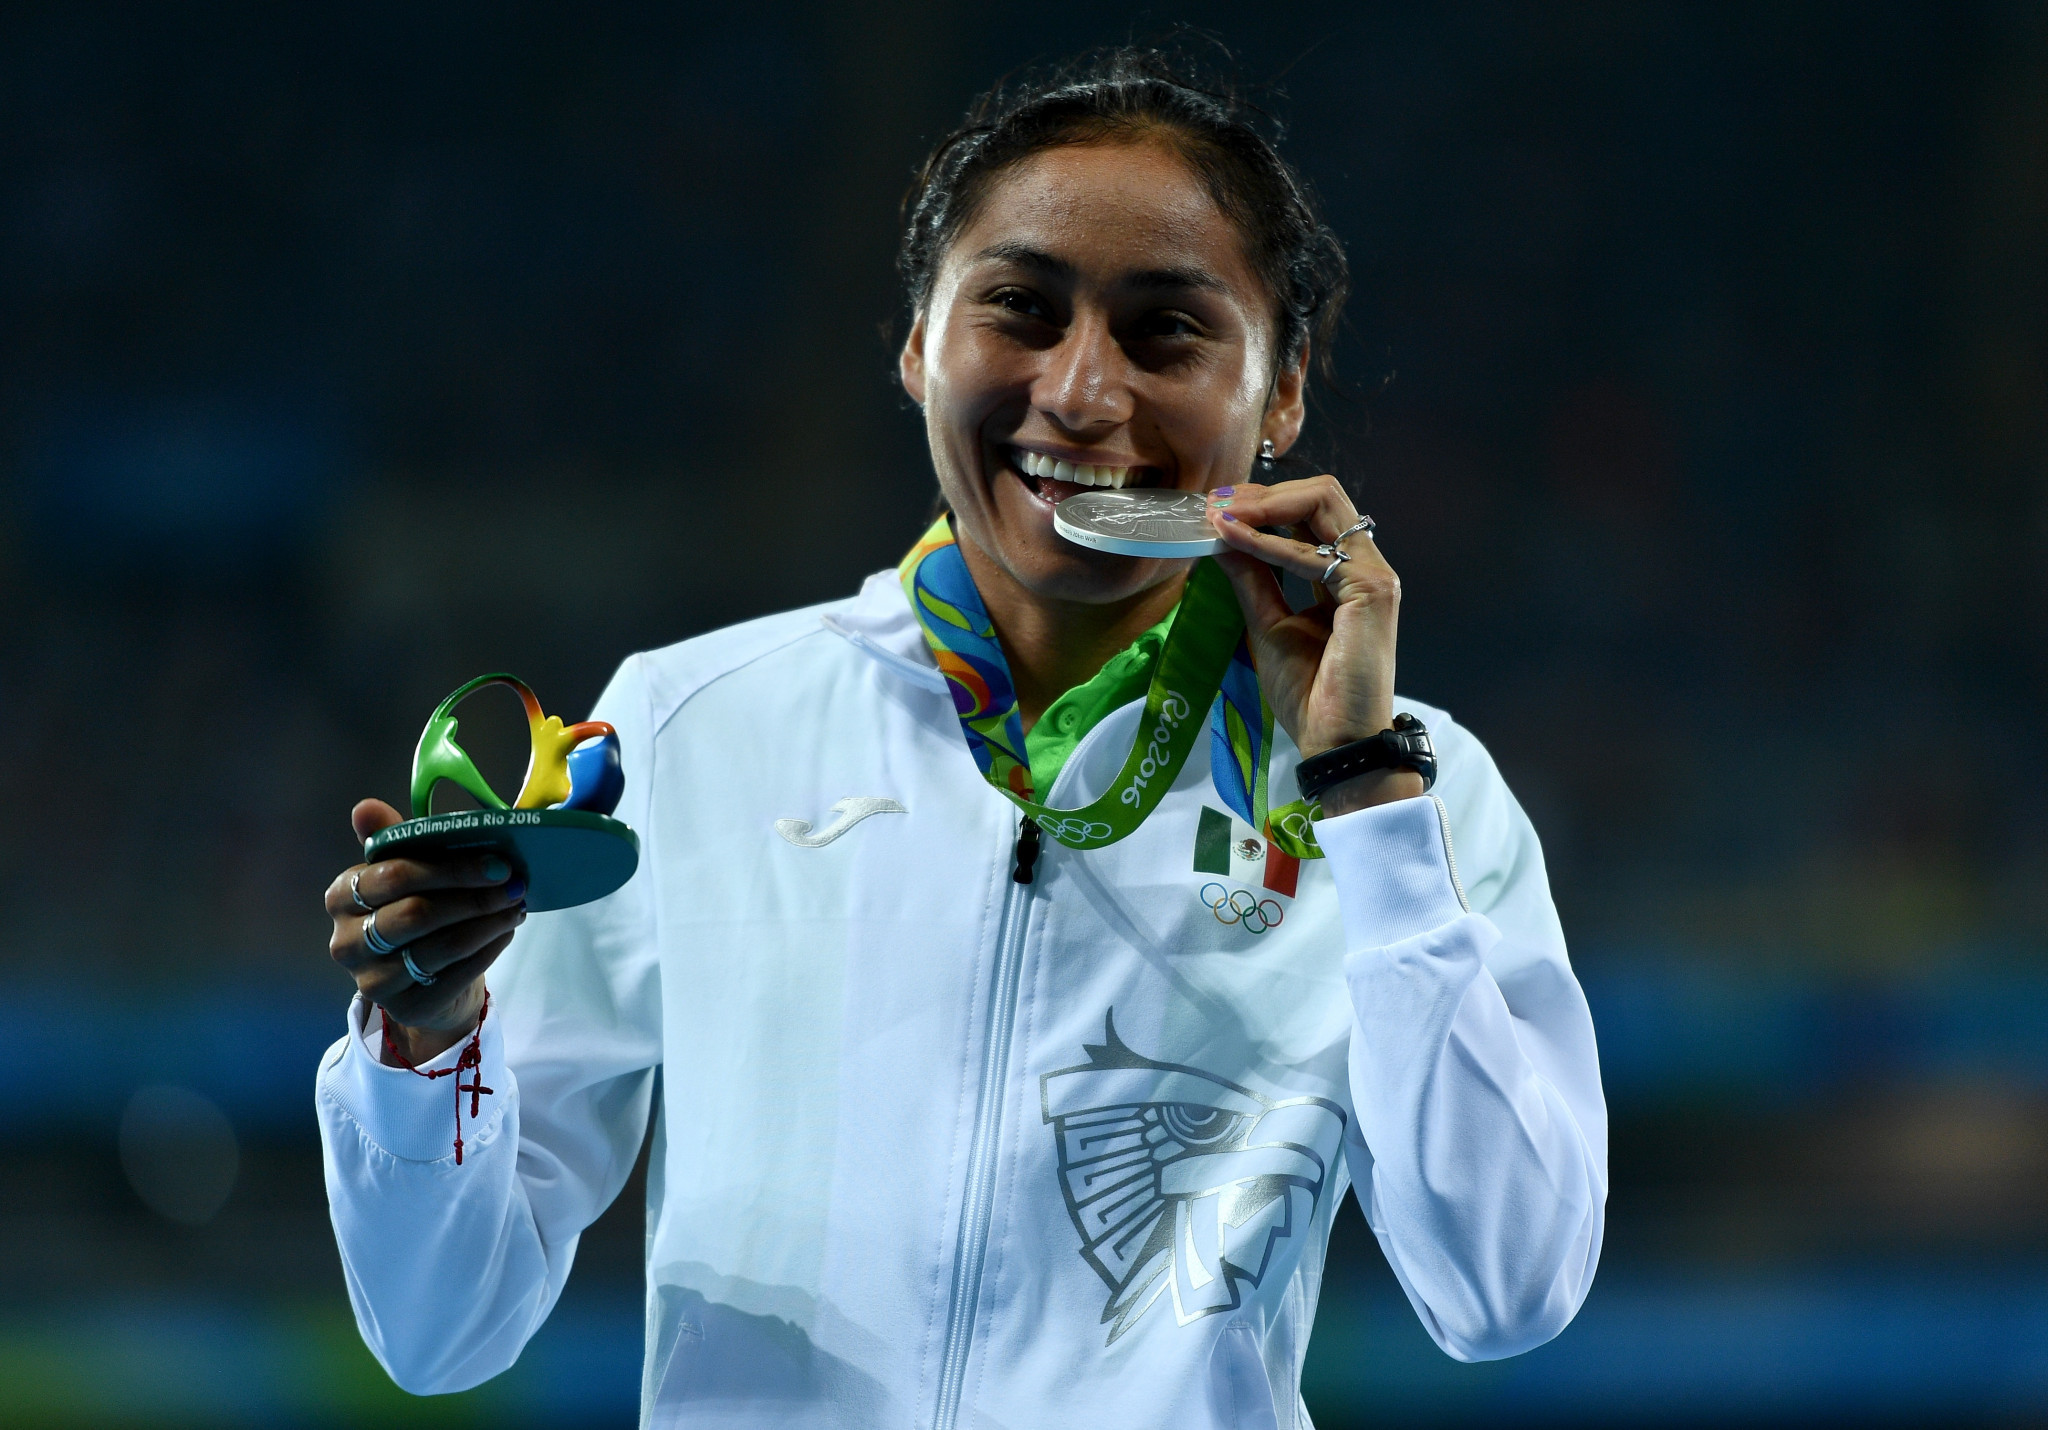 The Mexican is a Rio 2016 Olympic silver medallist ©Getty Images